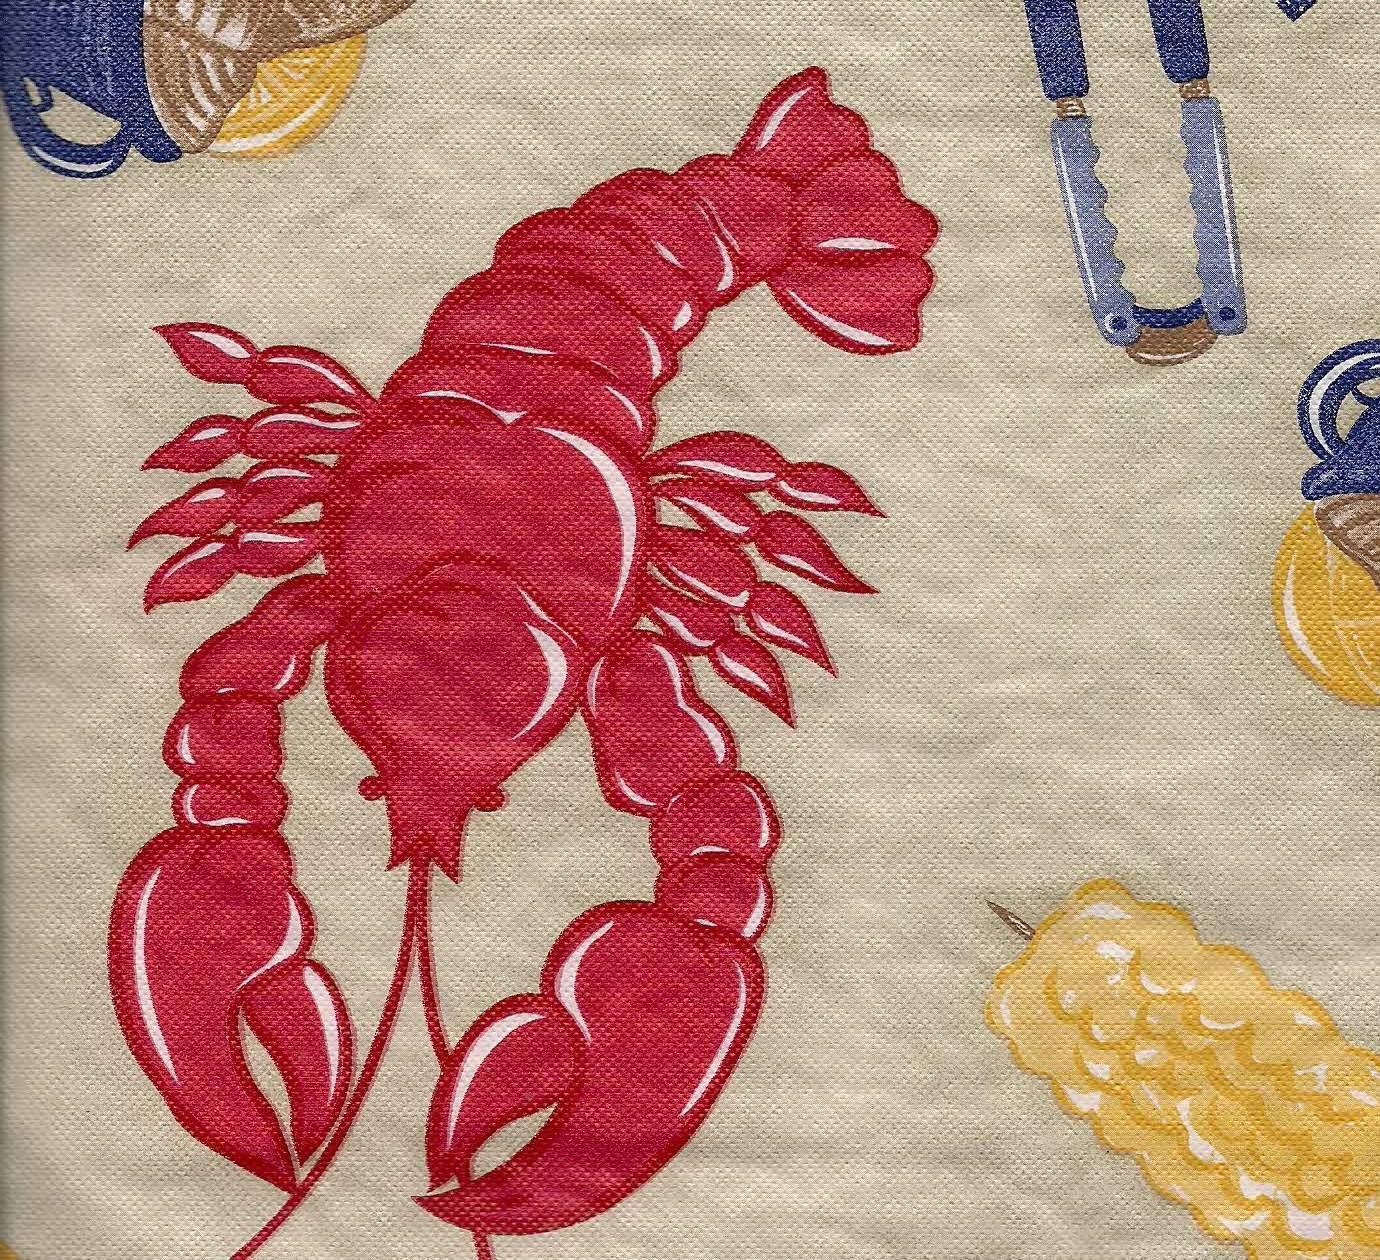 Backyard Clambake Lobster Vinyl Tablecloth flannel back 52 x 52